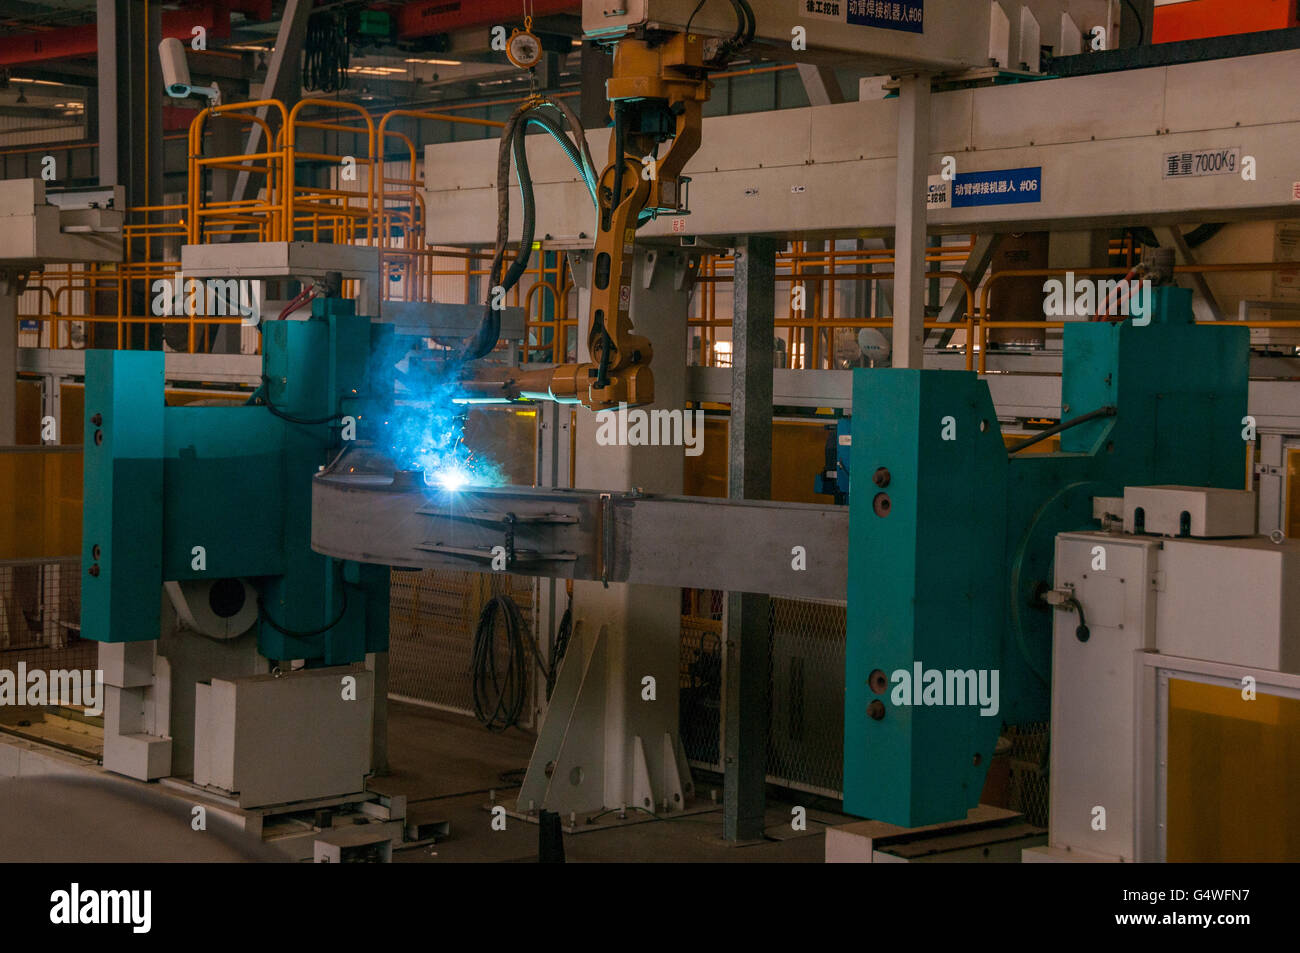 A robot welder in operation working on an excavator boom in the XCMG excavator factory in Xuzhou, China. - Stock Image